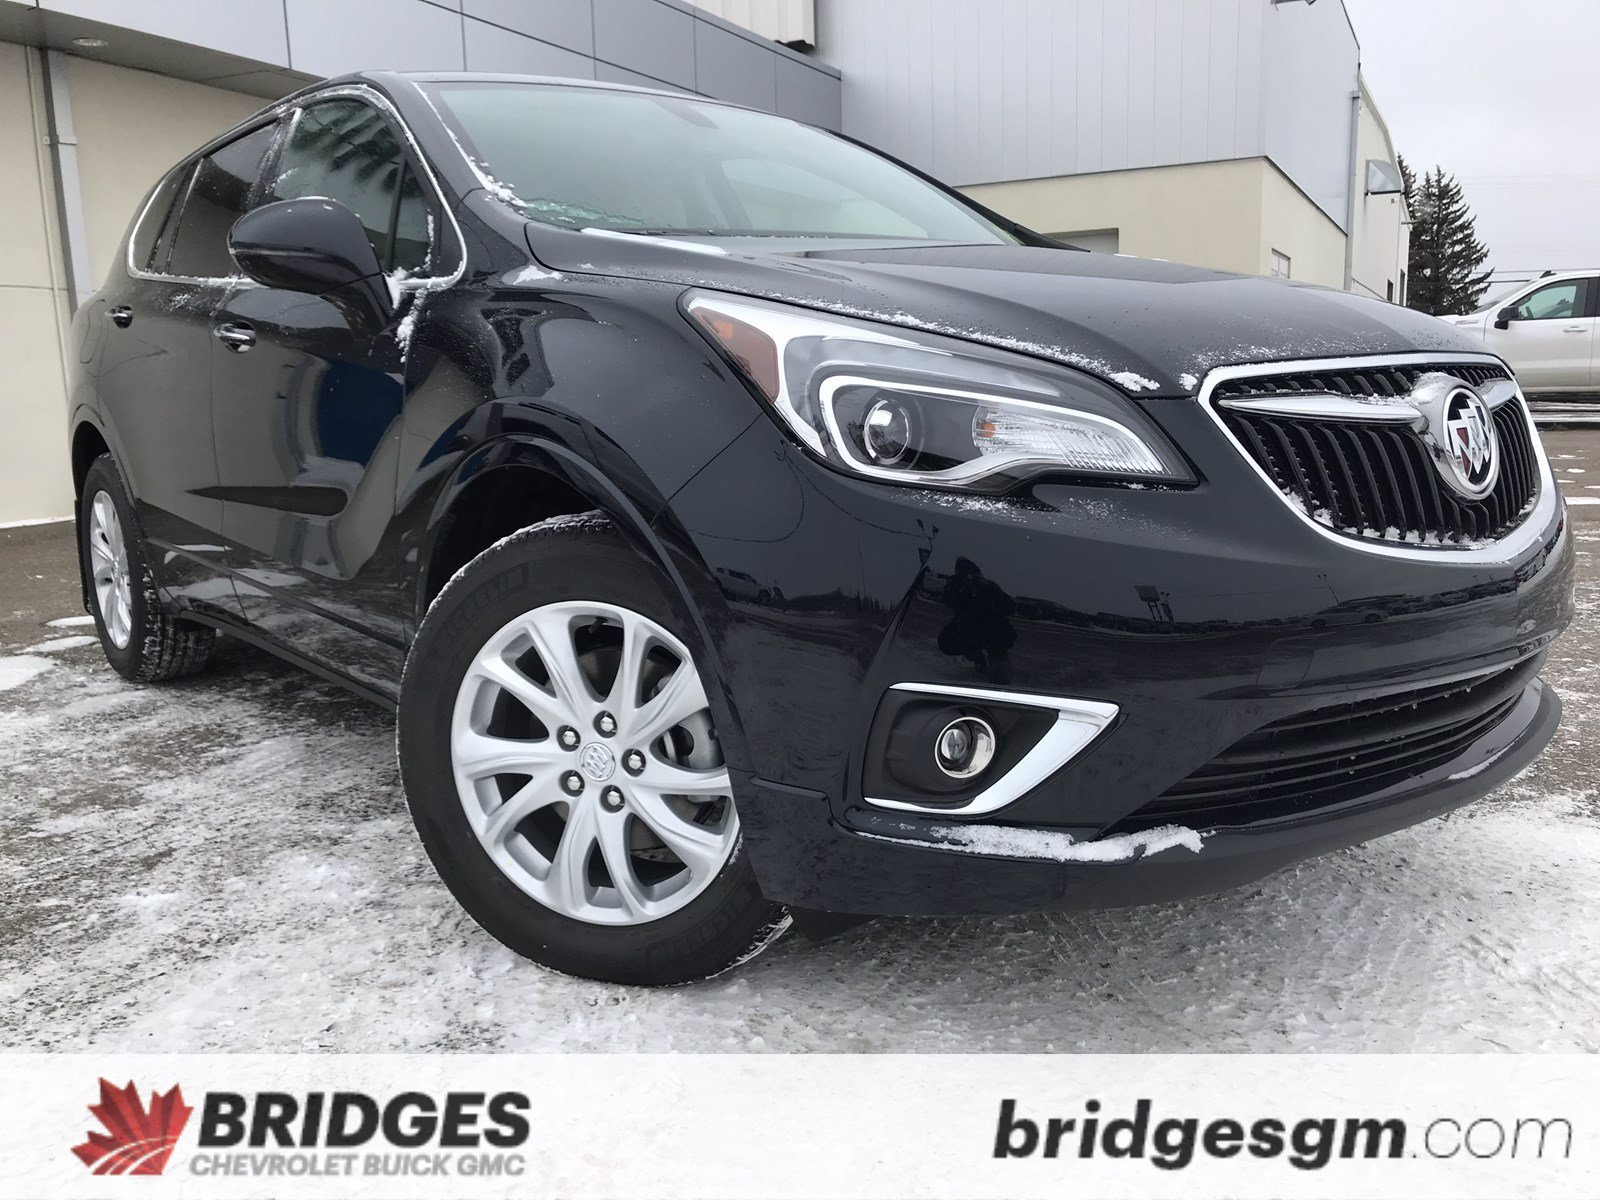 New 2020 Buick Envision Preferred Awd 2022 Buick Envision Reliability, Seat Covers, Safety Rating